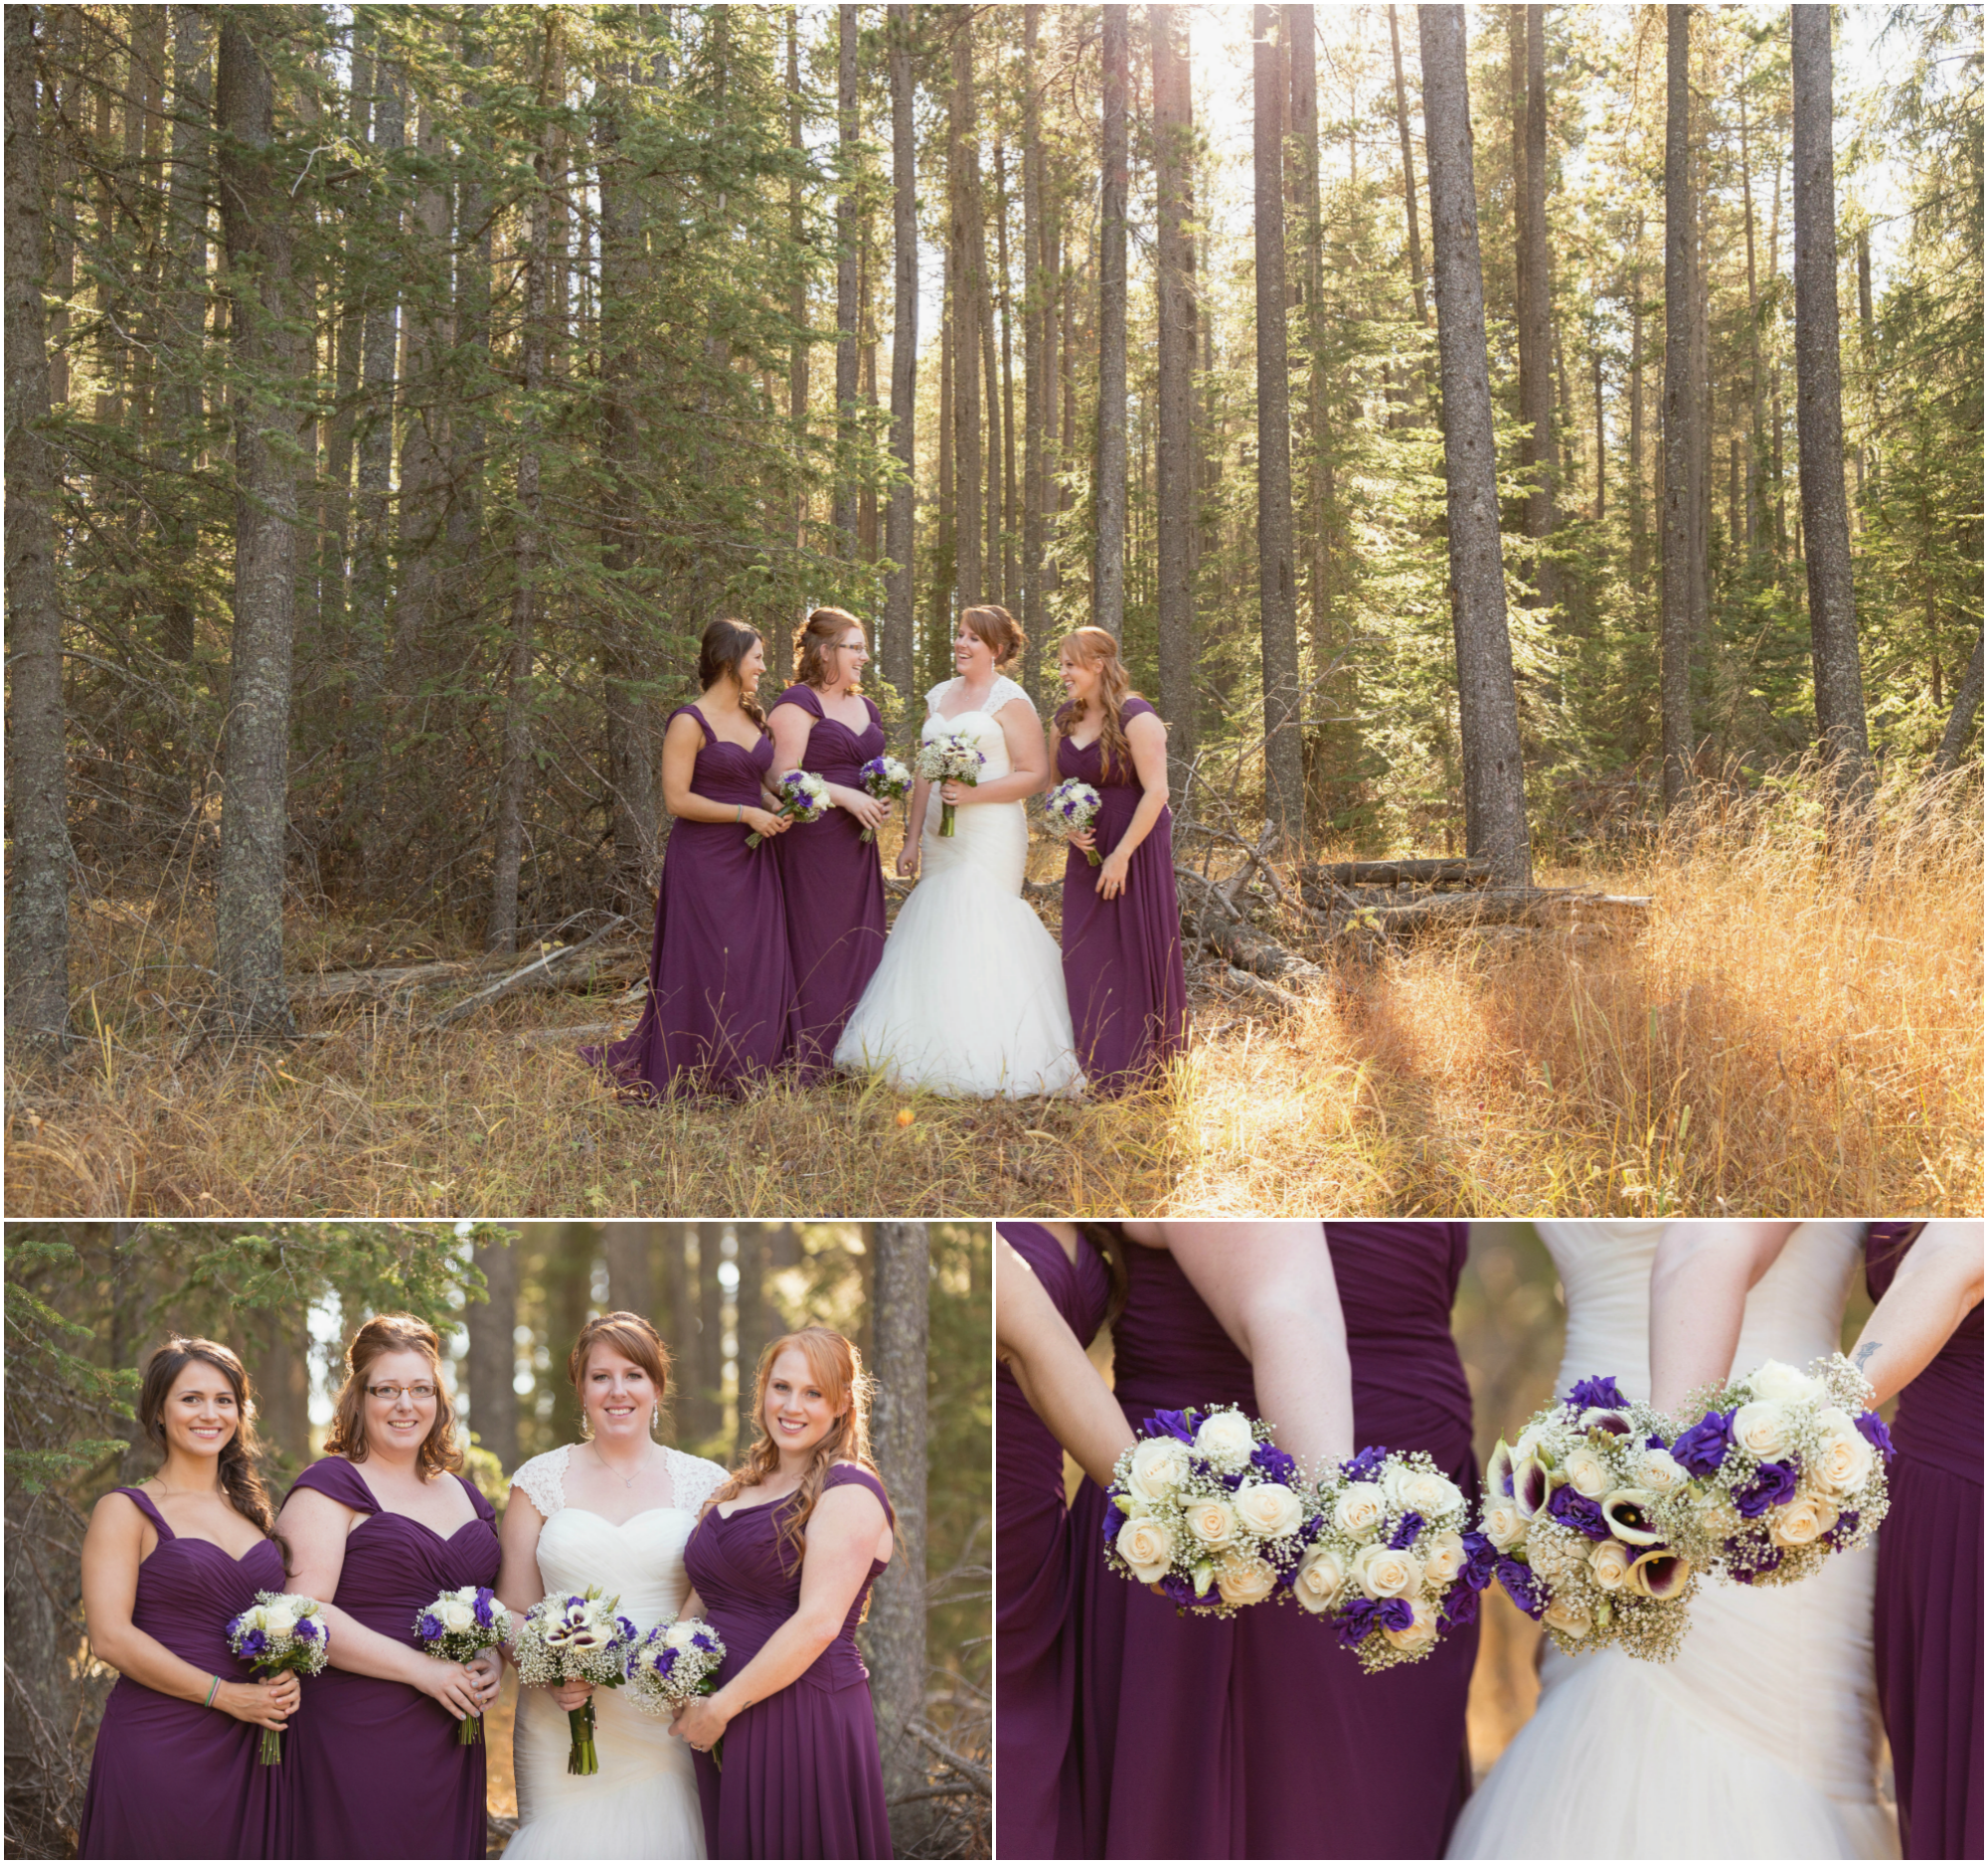 elkwater_wedding_08.png